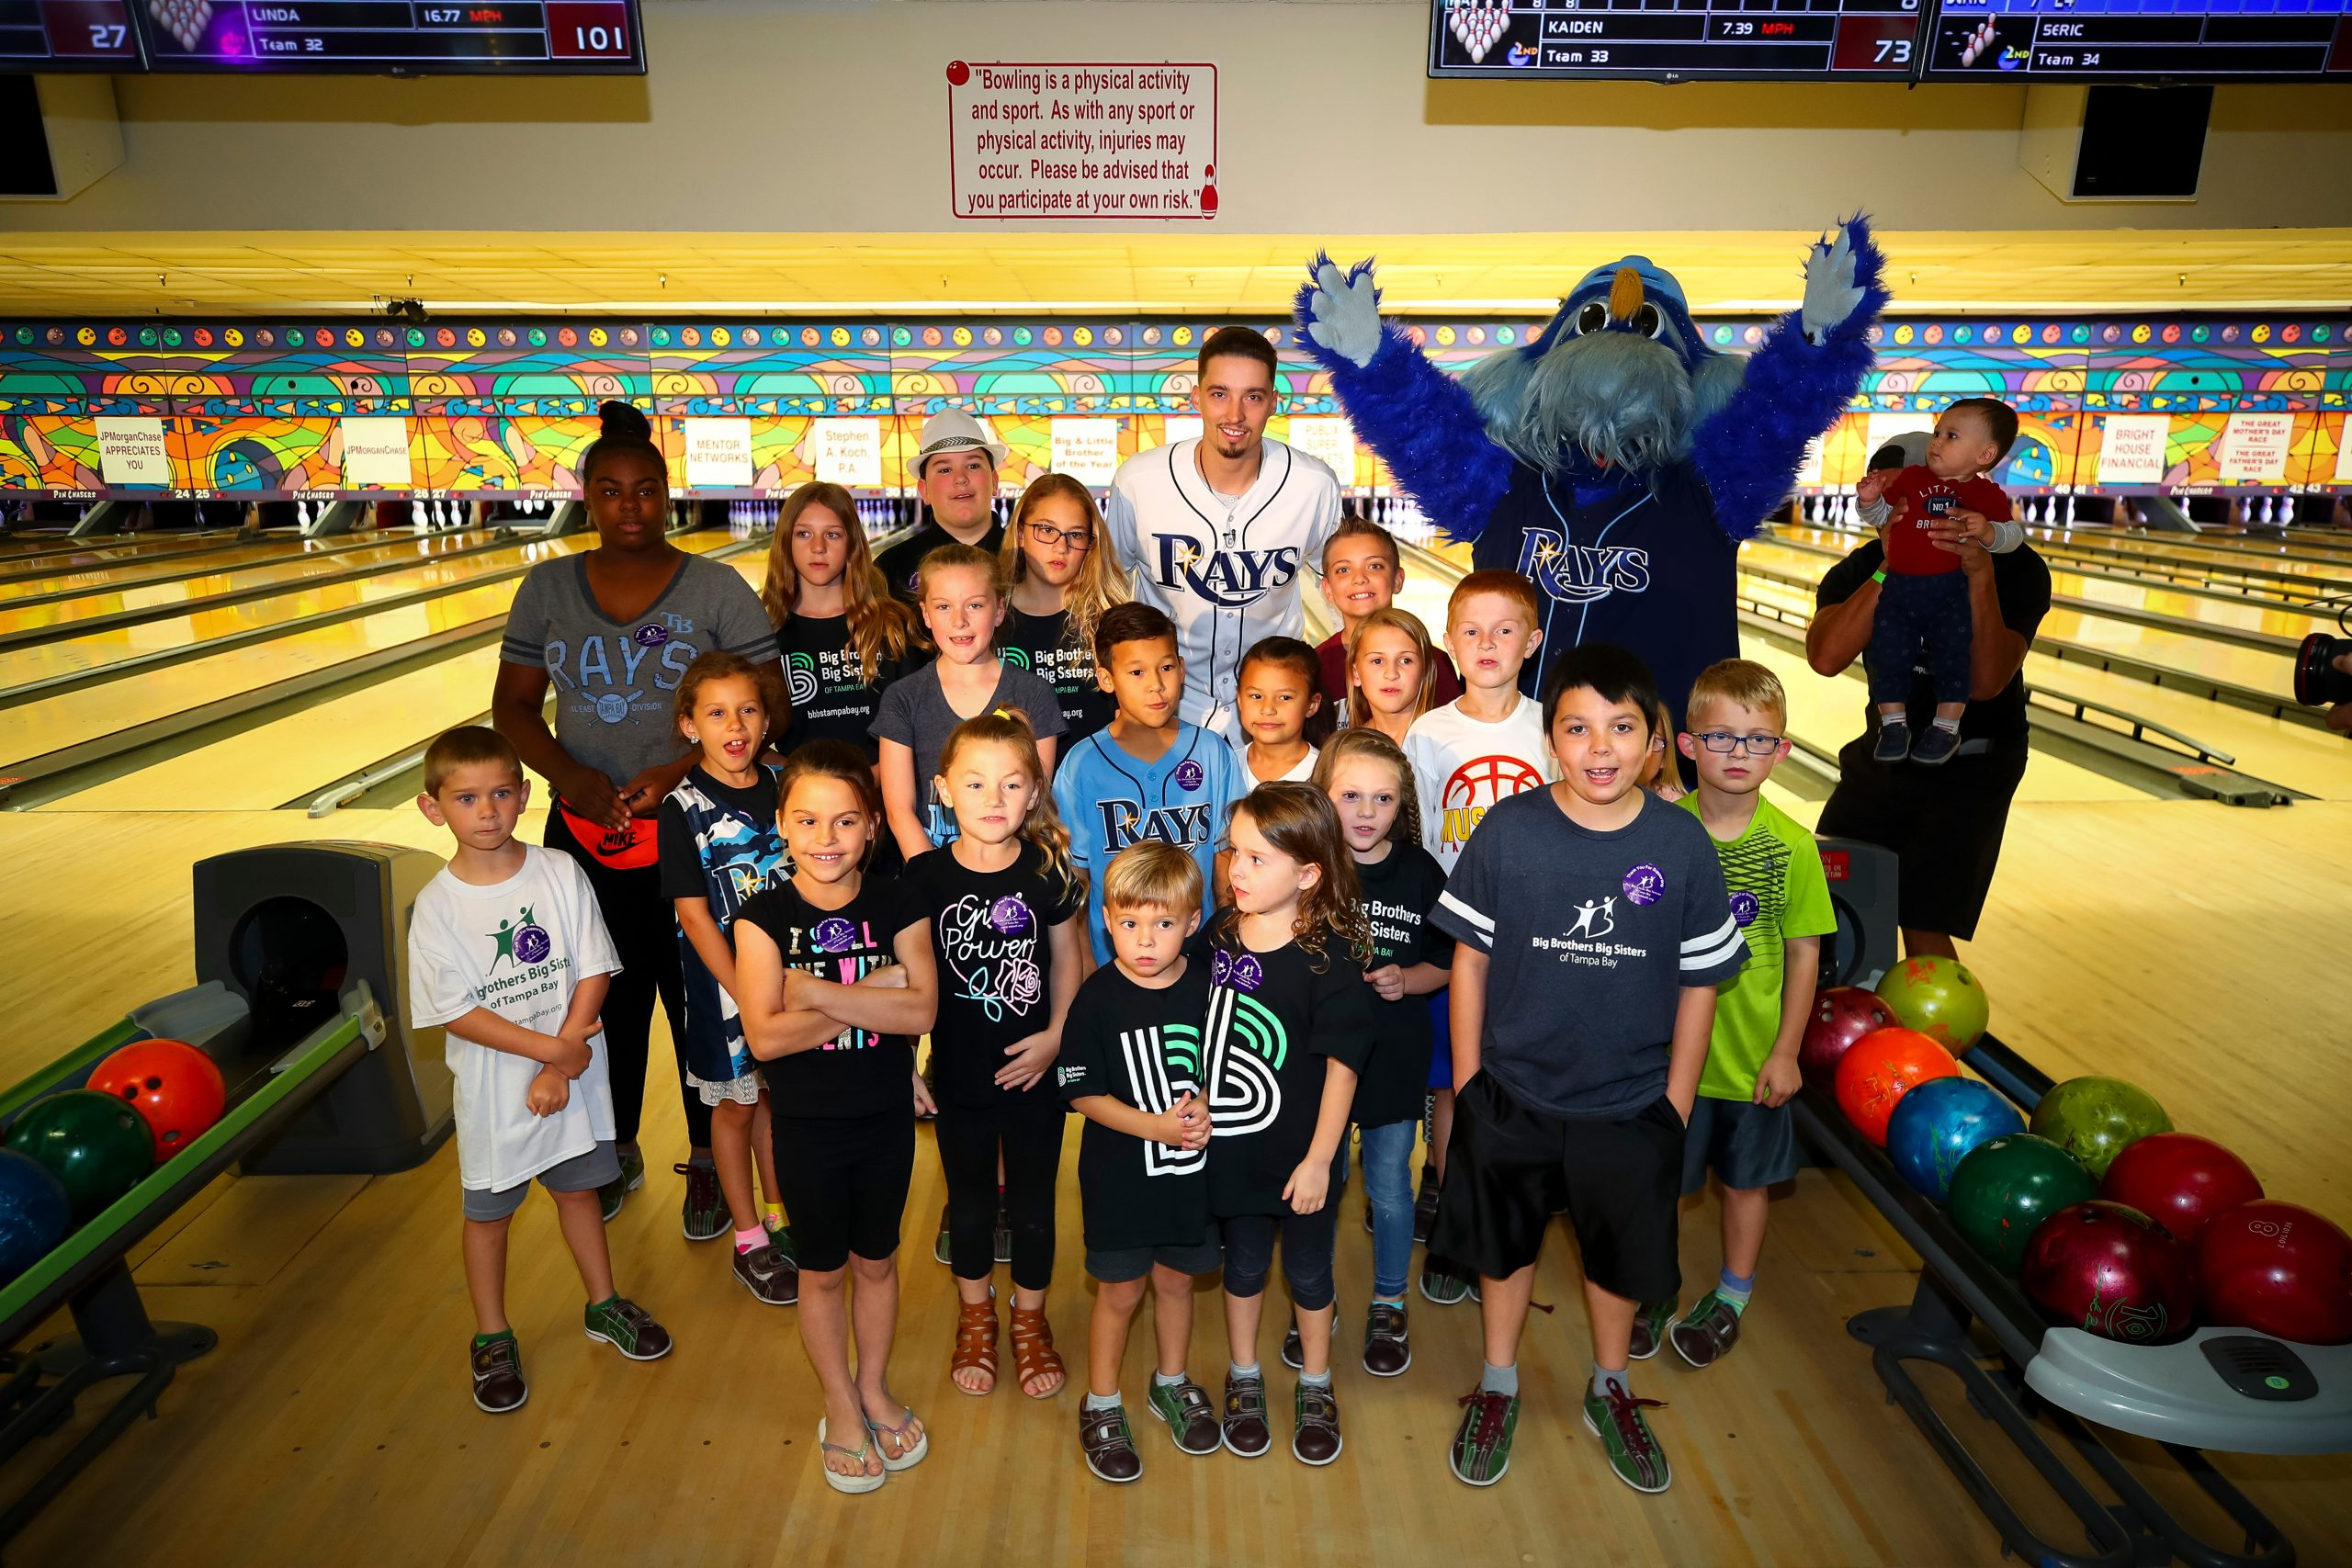 Bowl For Kids' Sake with Rays Pitcher Blake Snell